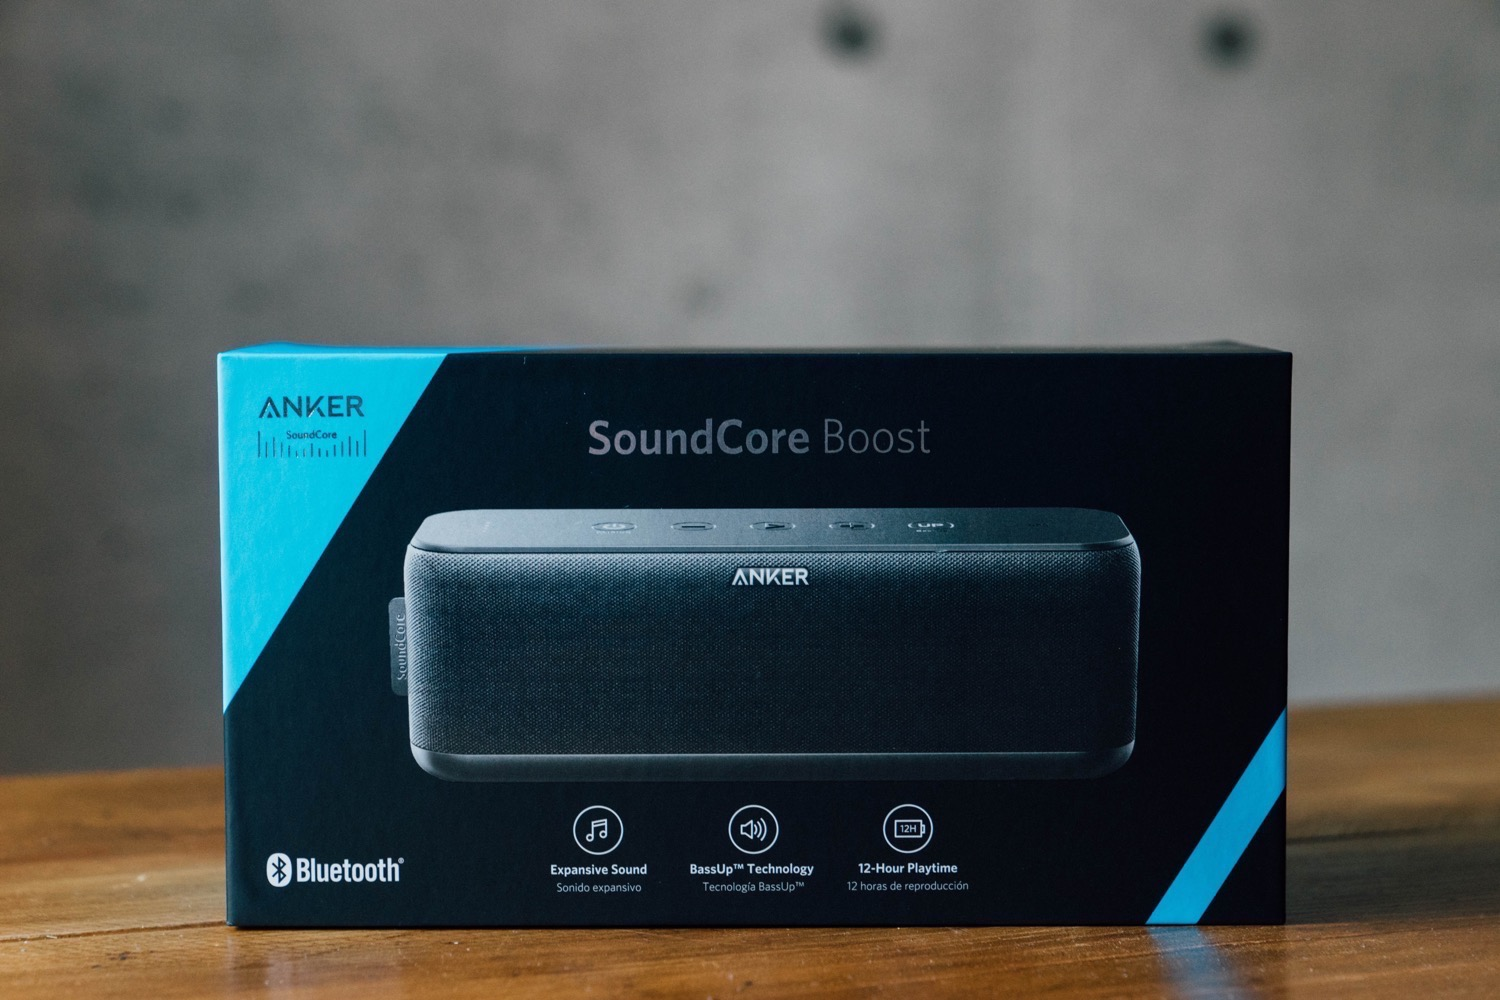 Anker SoundCore Boost 1